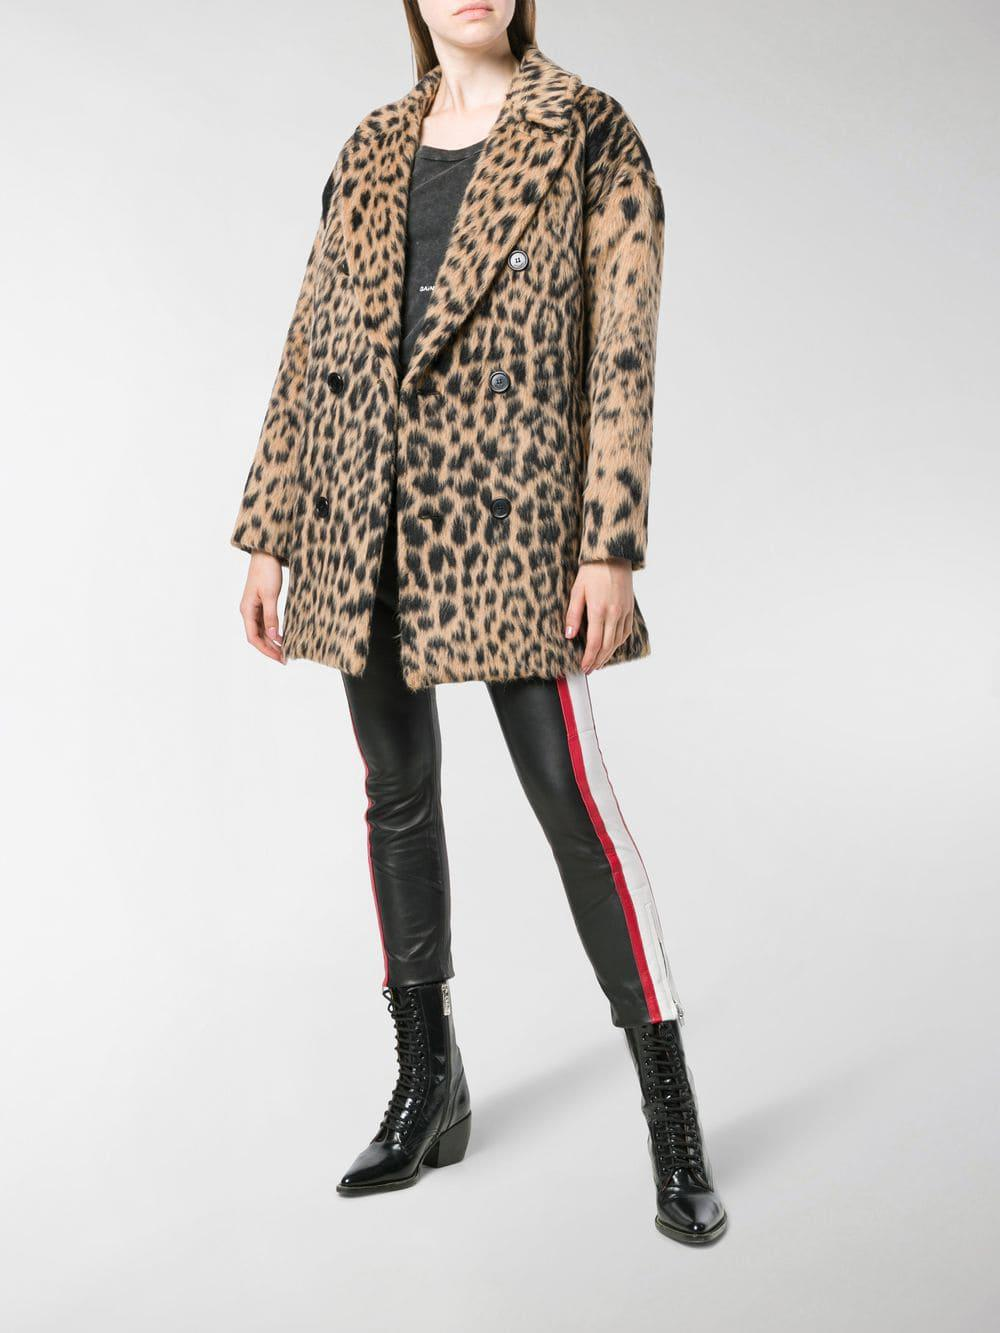 72fd0521e1091 Saint Laurent Double-breasted Leopard Coat in Black - Lyst